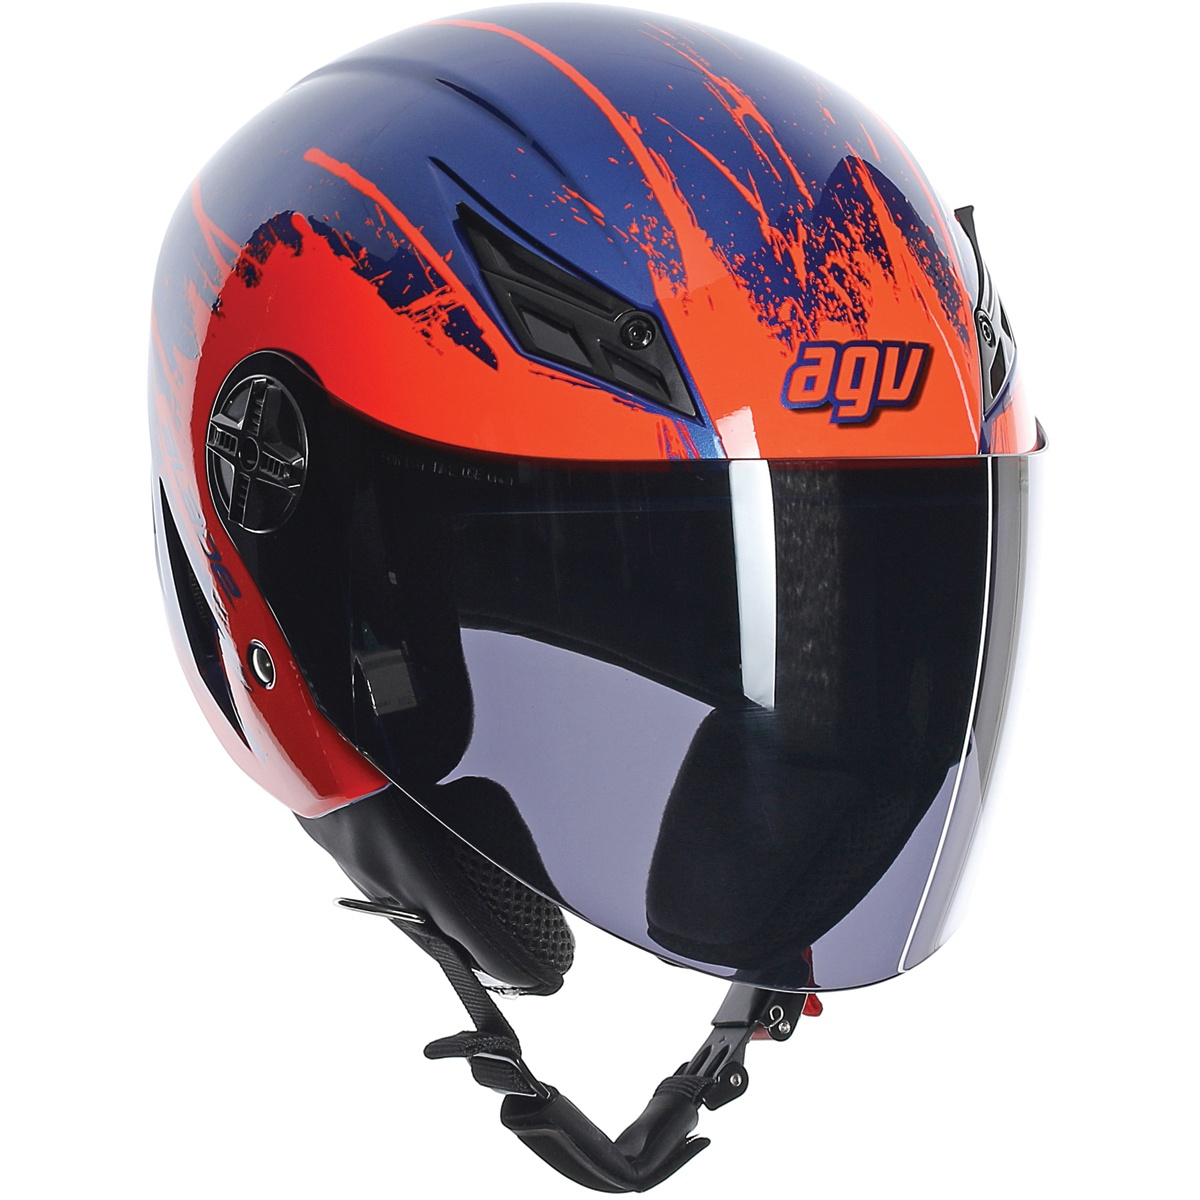 Get it delivered to your door - AGV BLADE TOO FAST - 2580 (EGP)